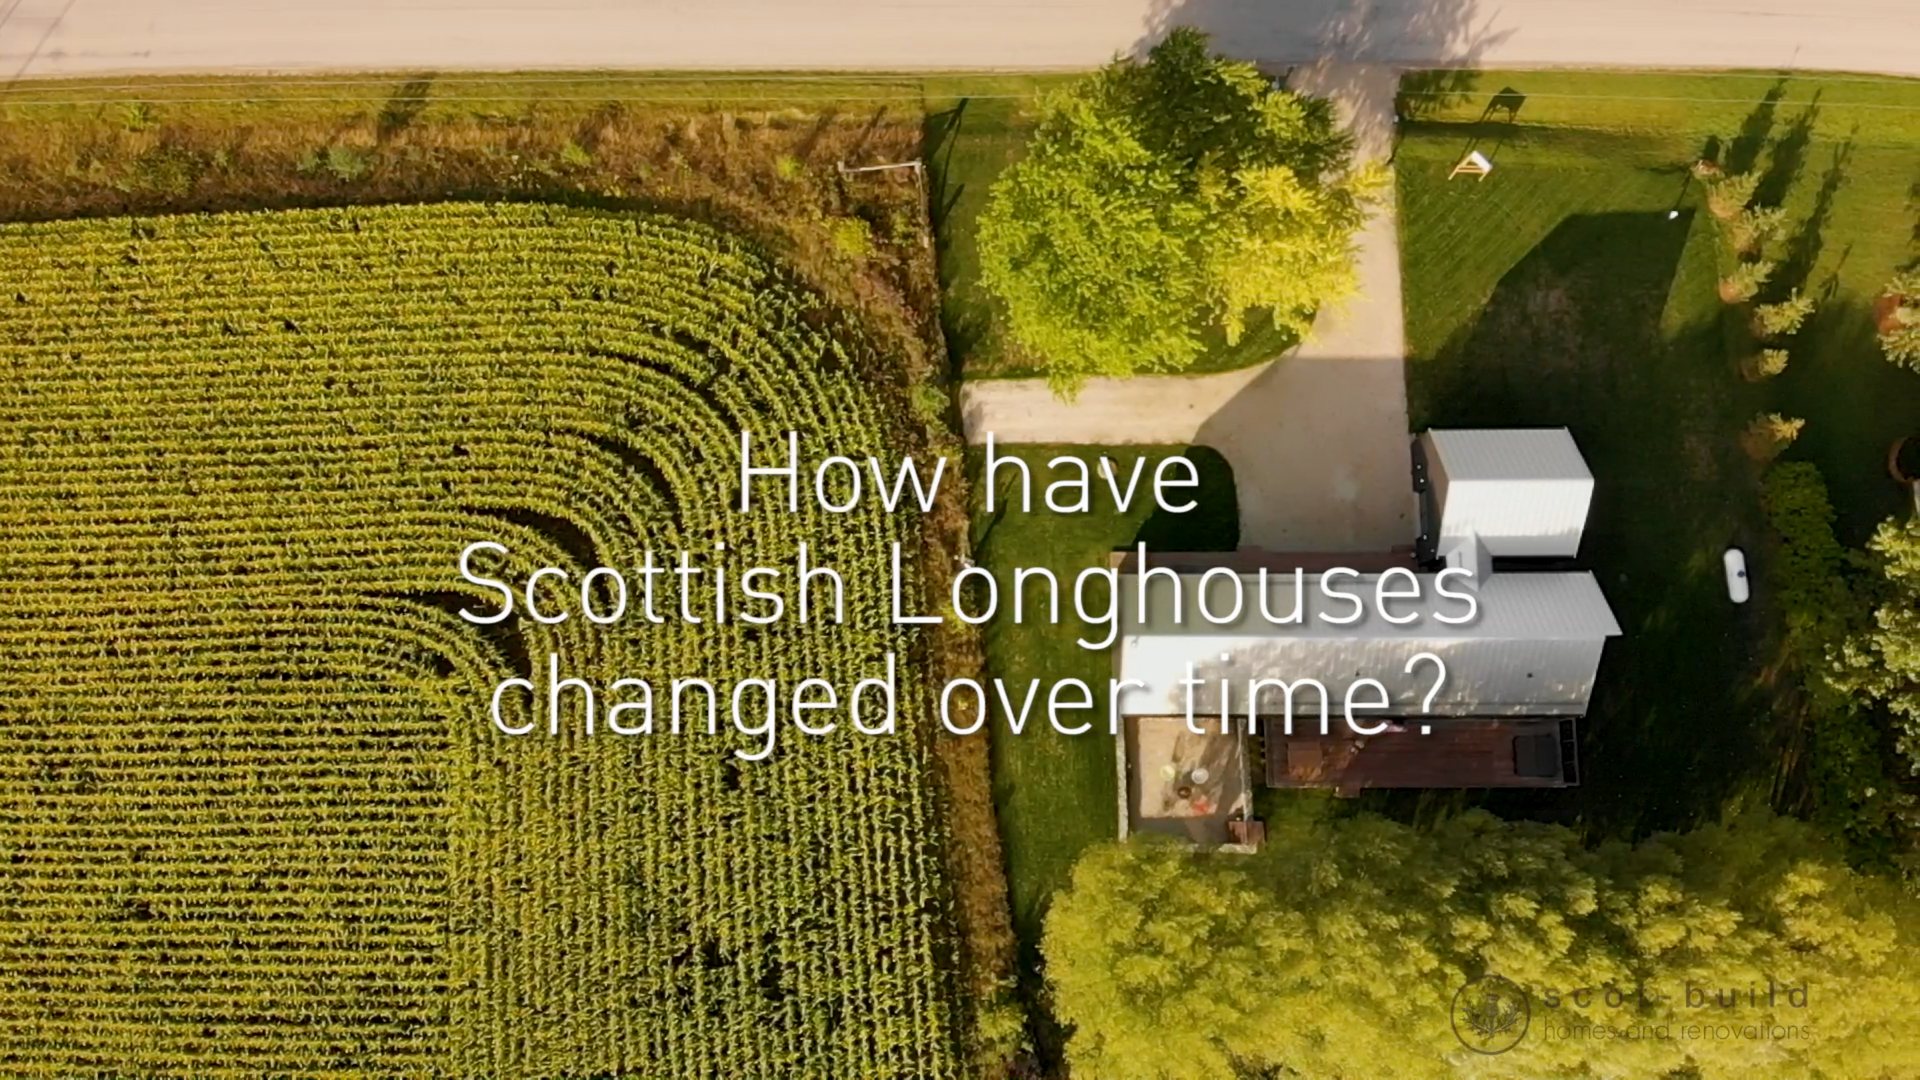 Past to Present of Scottish Longhouse